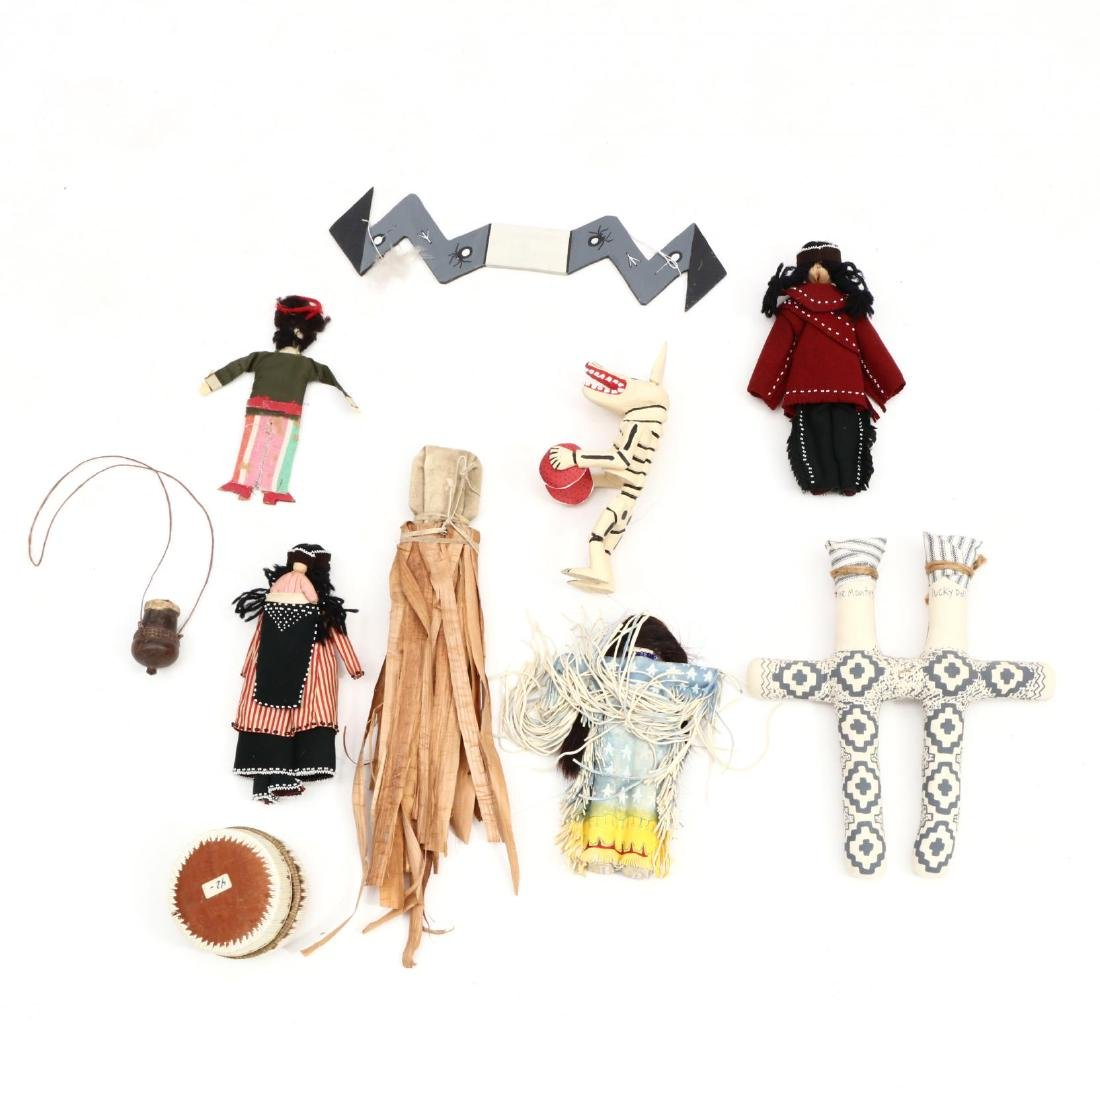 A Group of Ethnic Souvenir Items - 3